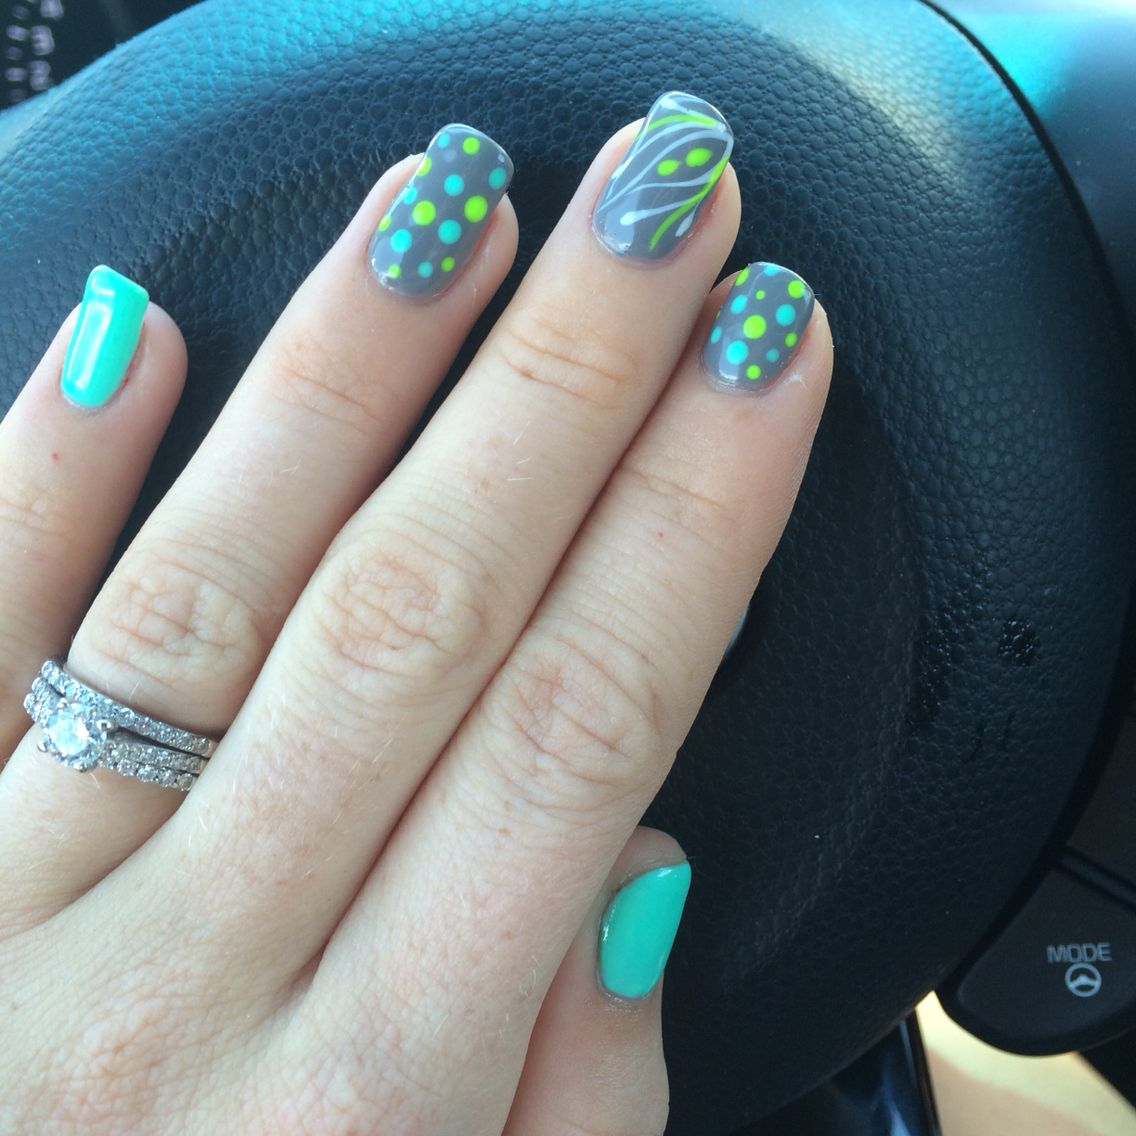 Nails! Tiffany blue, lime green and grey. Poka dots and design. Fun ...